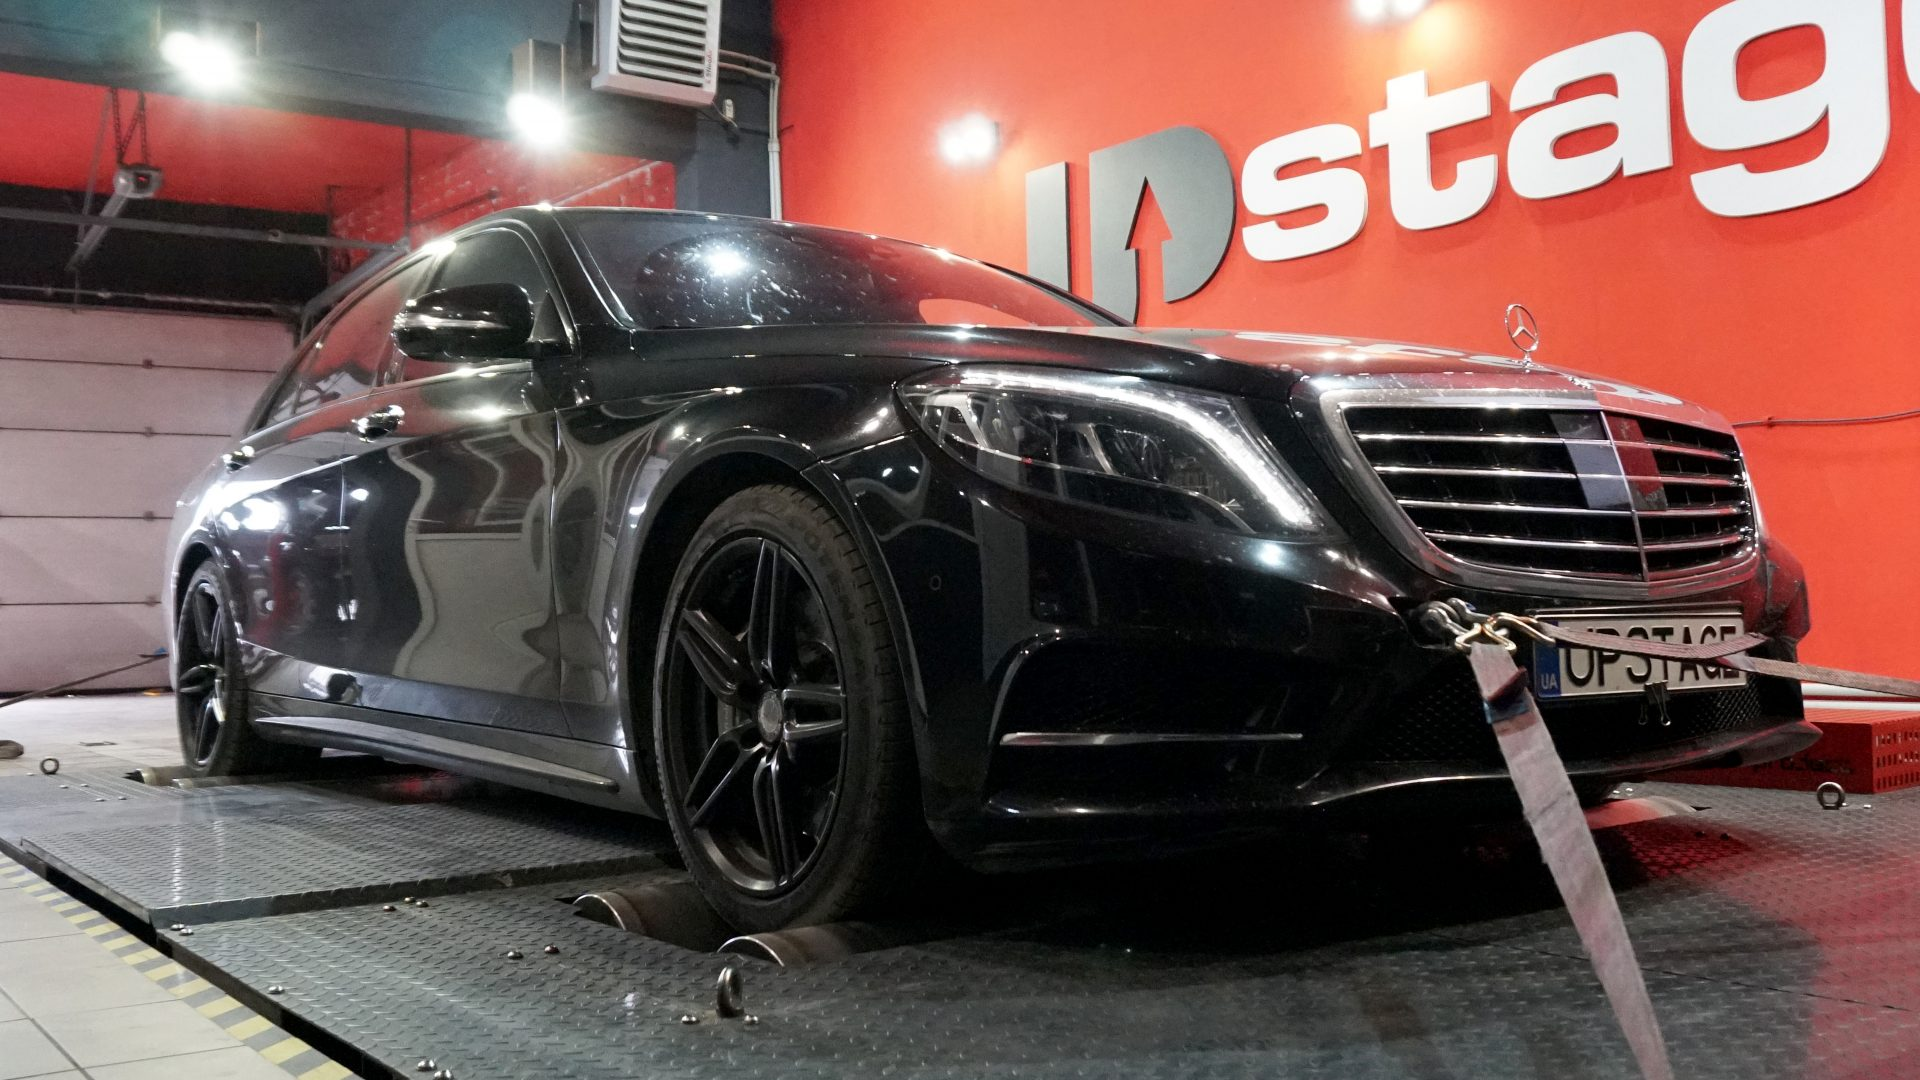 chip-tuning-Mercedes-S450-w222-3.0t